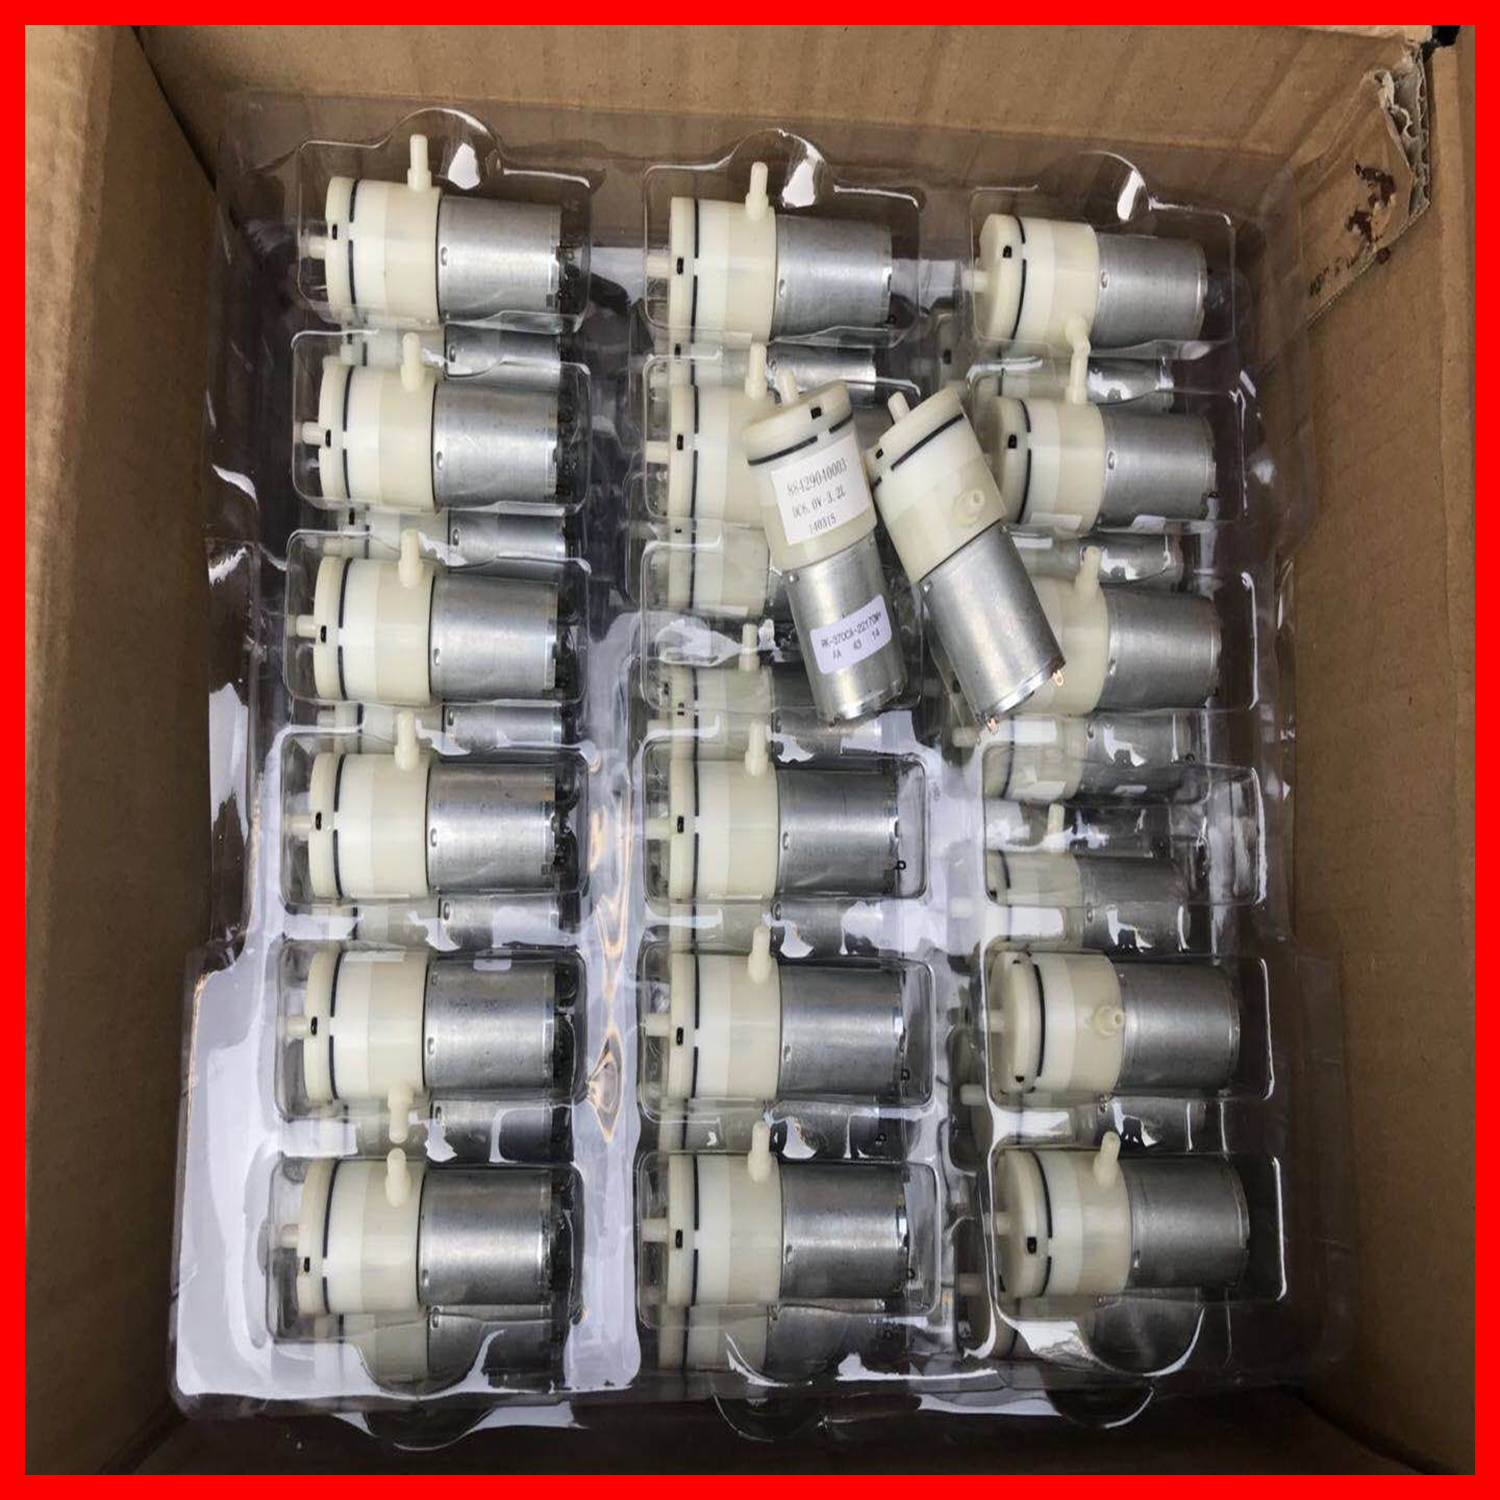 Micropump SC3704PM DC 12V 370 Inflatable Pump Milk Absorber Strength Pipe Facilities/Pumps, Parts and Accessories/Pumps